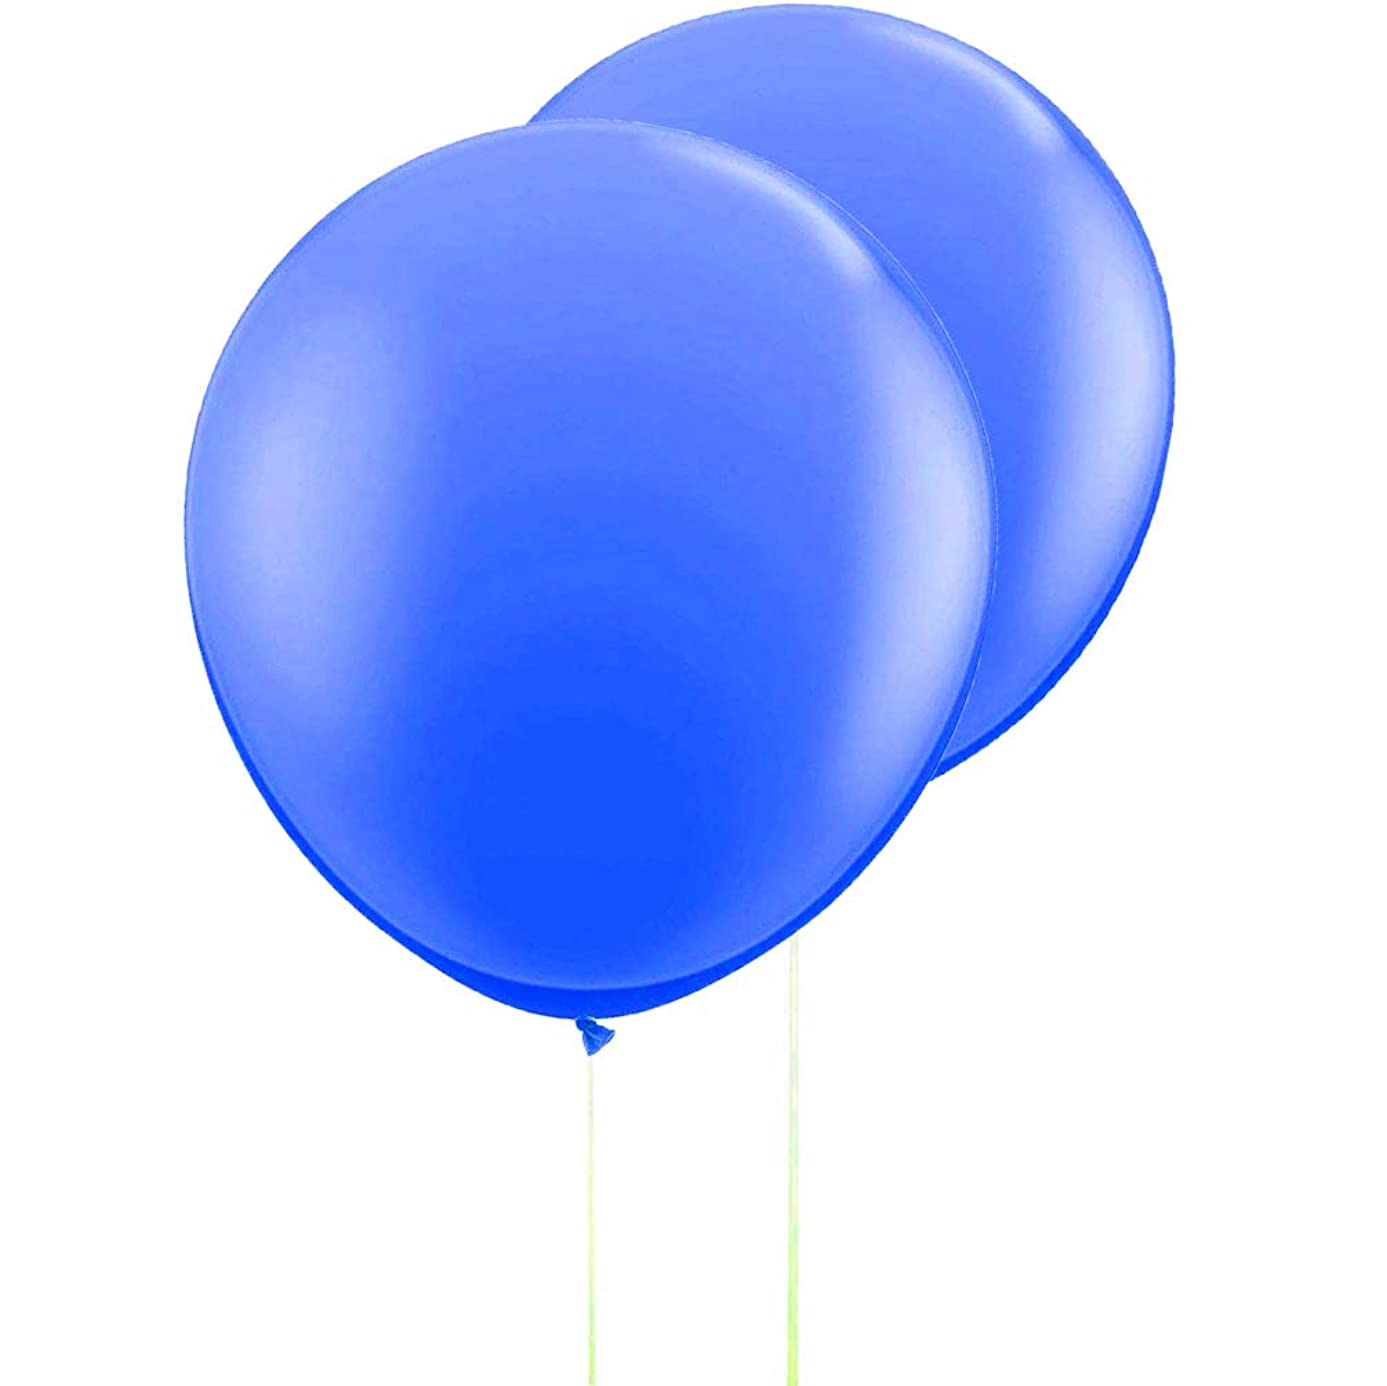 AZOWA 36 In Big Round Balloons Blue Gaint Party Balloons Large Latex Balloon for Wedding Baby Shower Birthday Party Decorations 6 pack